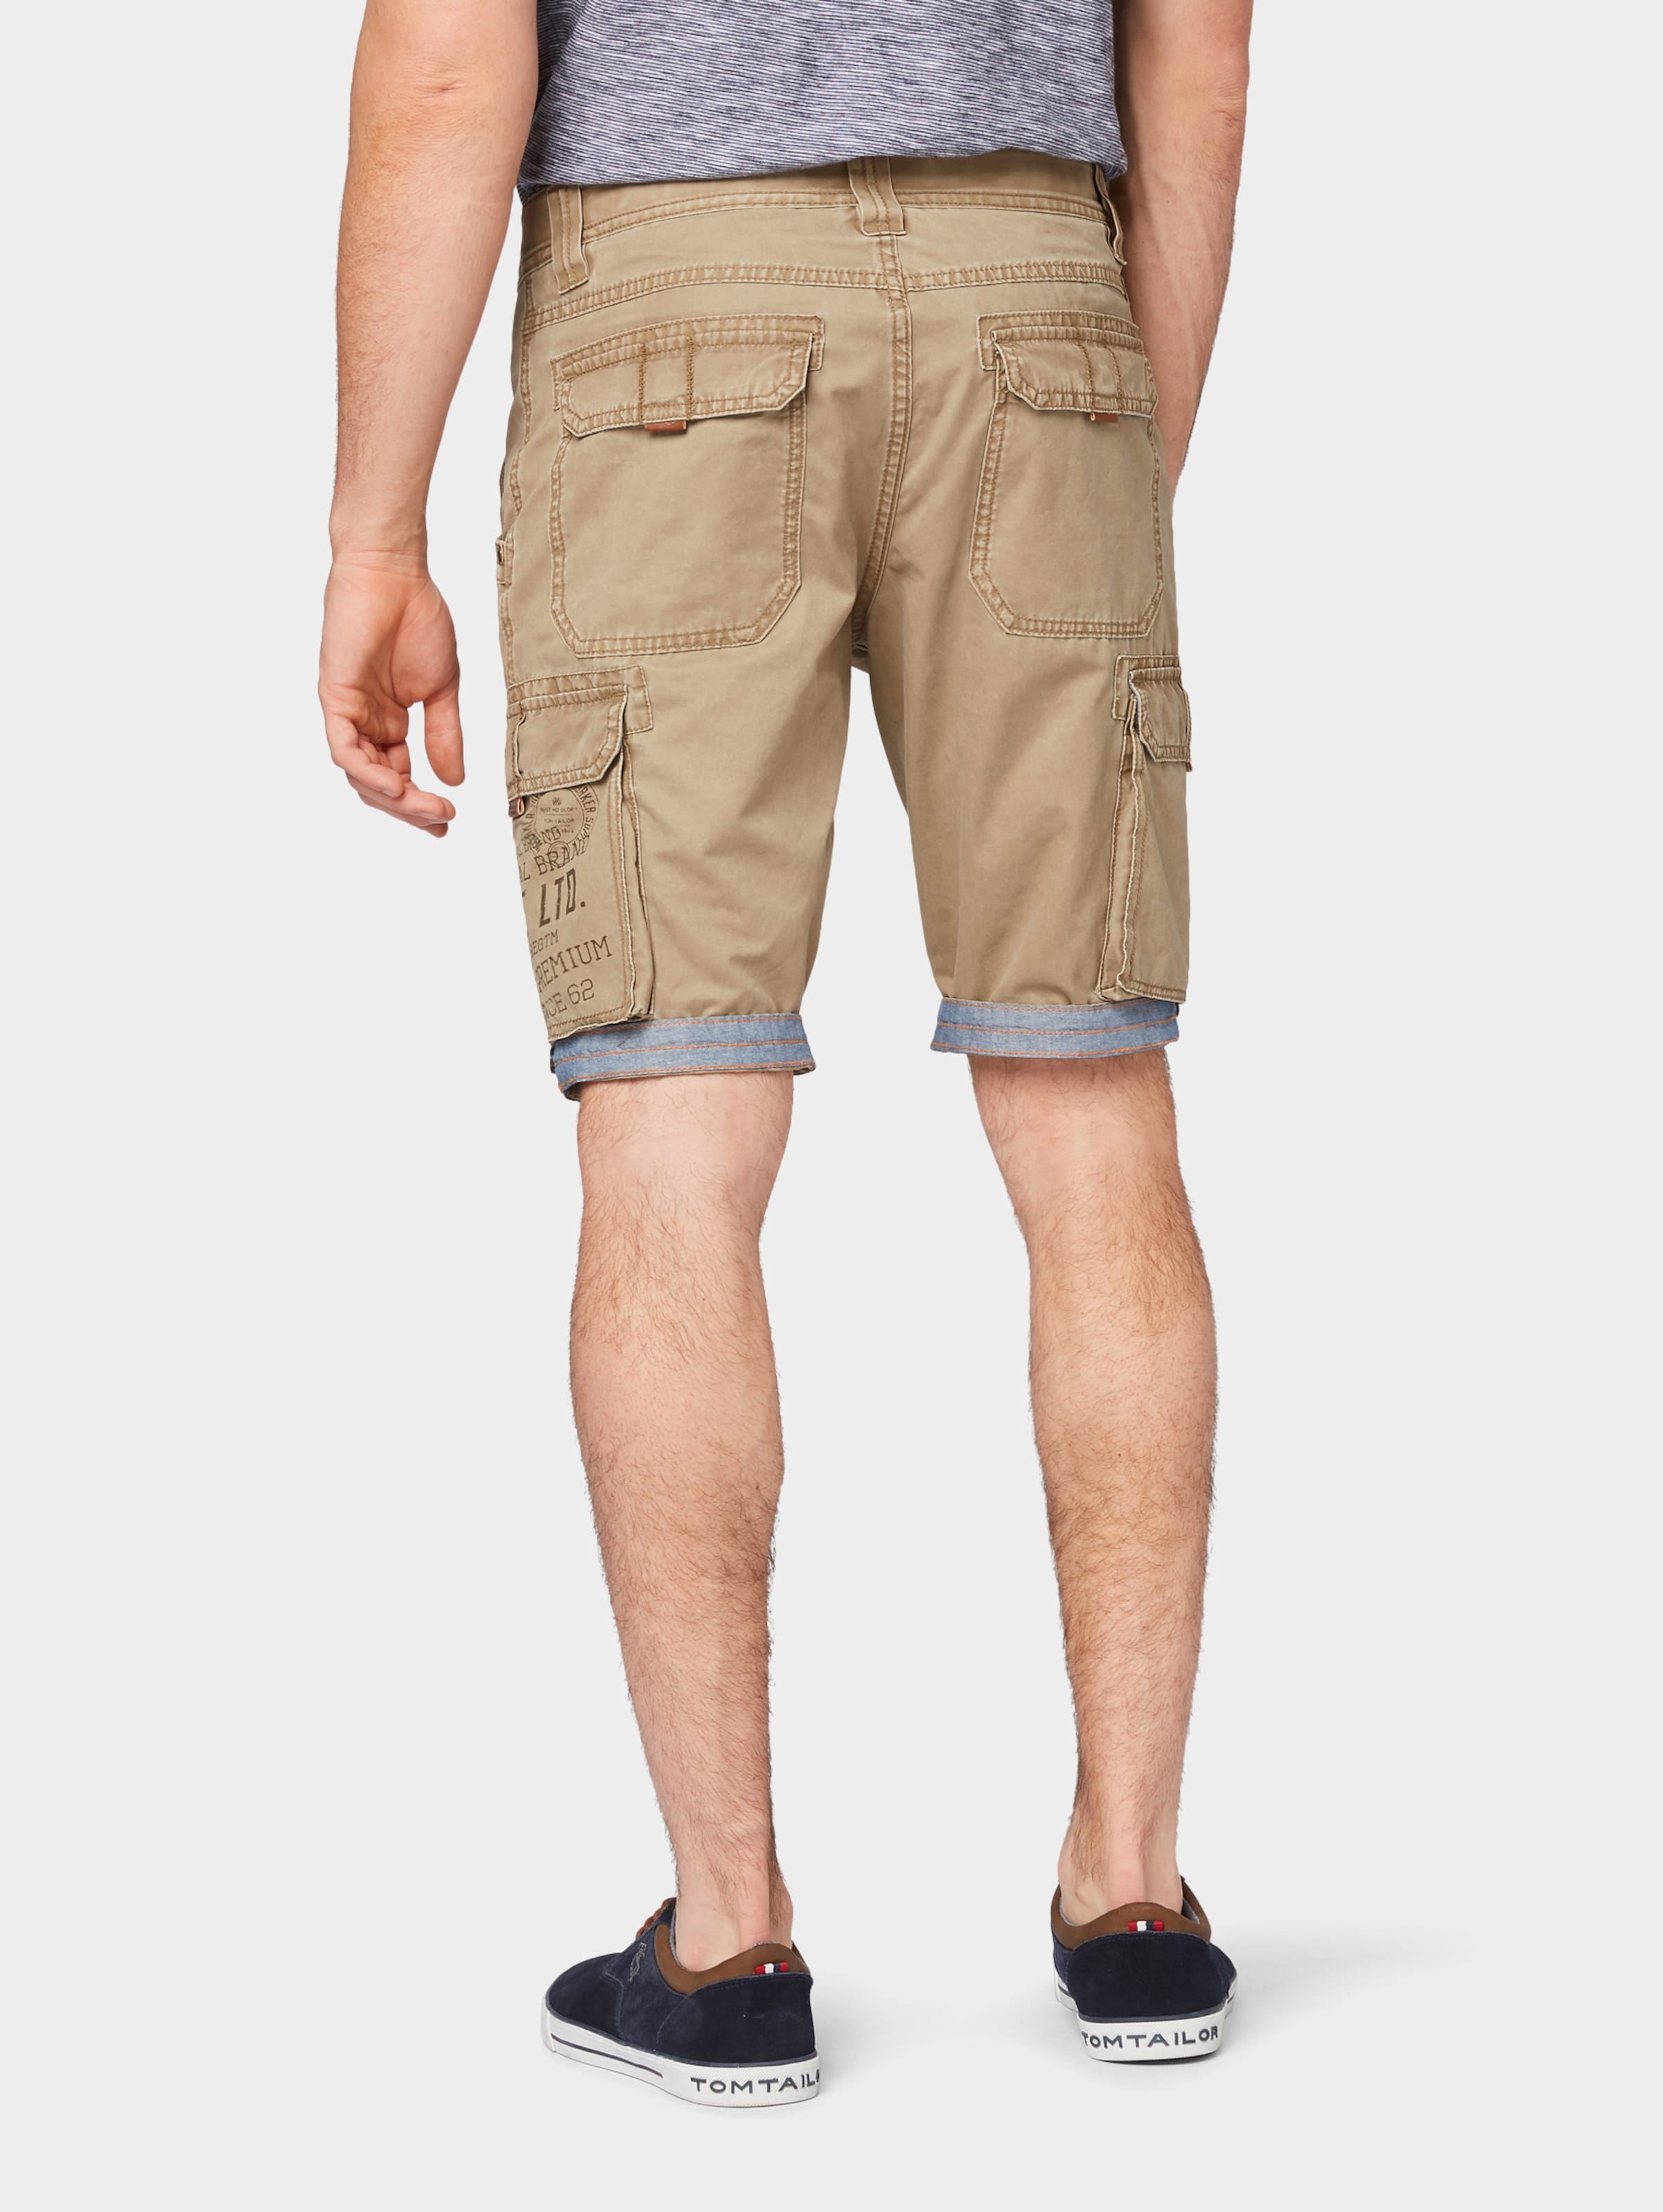 Tom Hellbeige Tailor Shorts 'josh' In EIWDH29